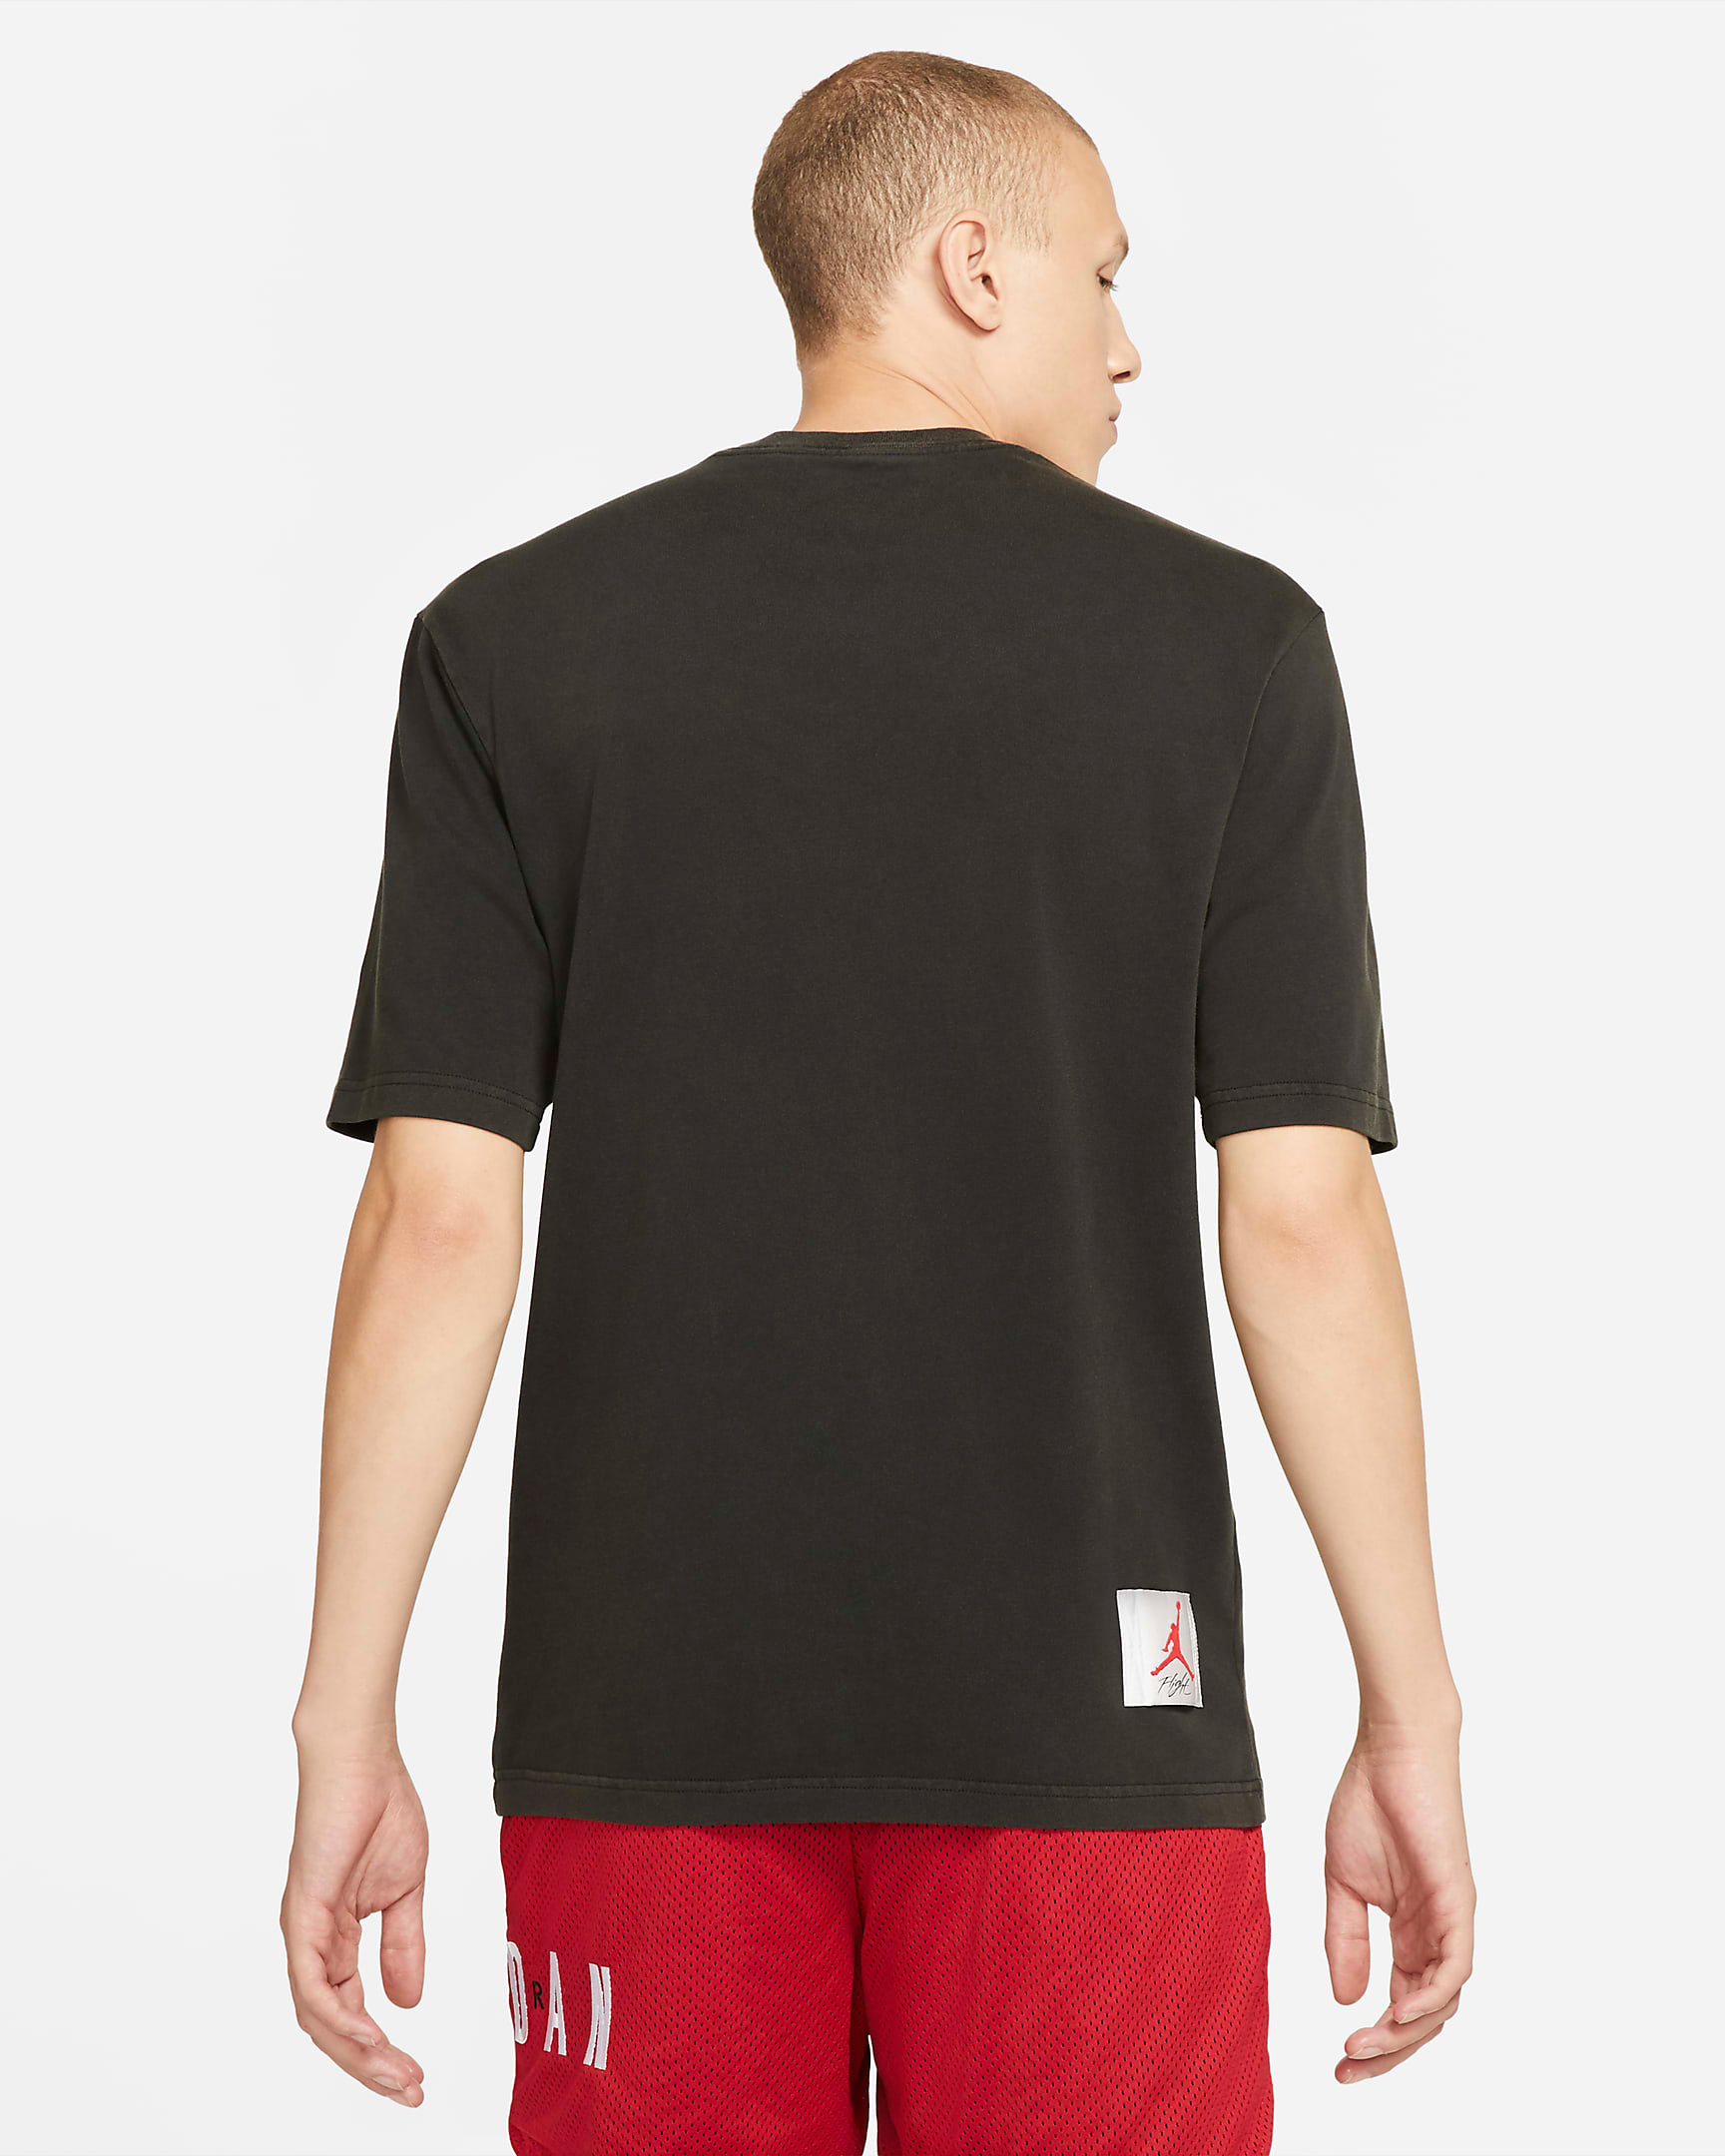 jordan-flight-graphic-shirt-black-red-grey-summer-2021-2